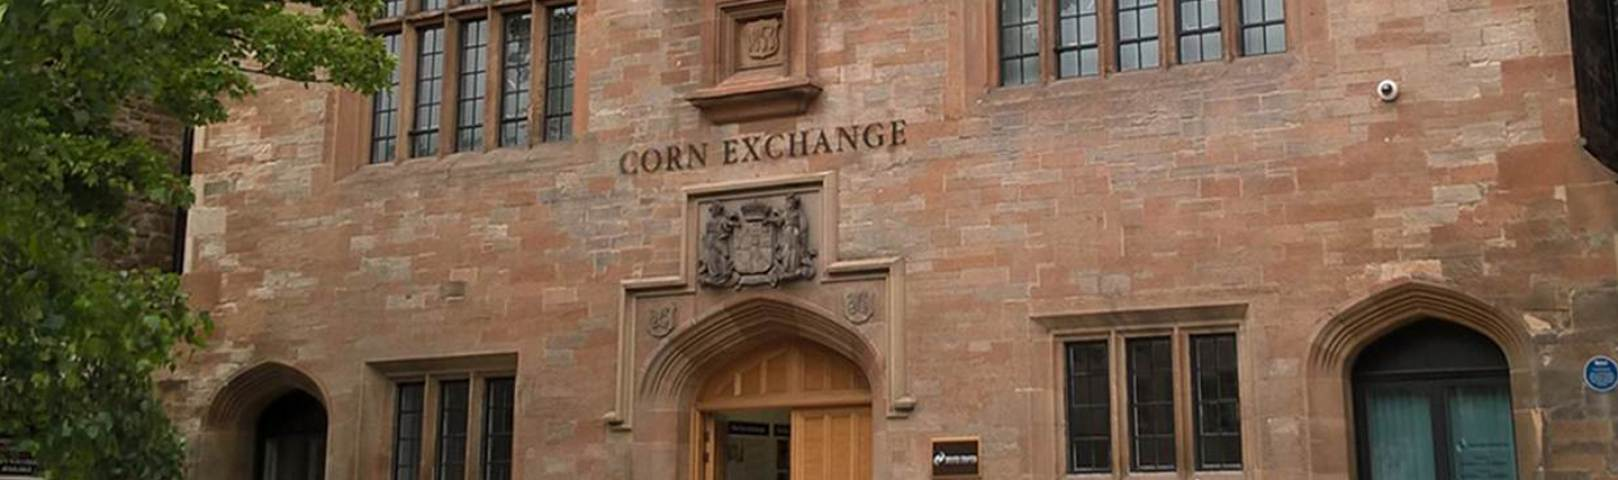 We are based at the Corn Exchange, Dalkeith